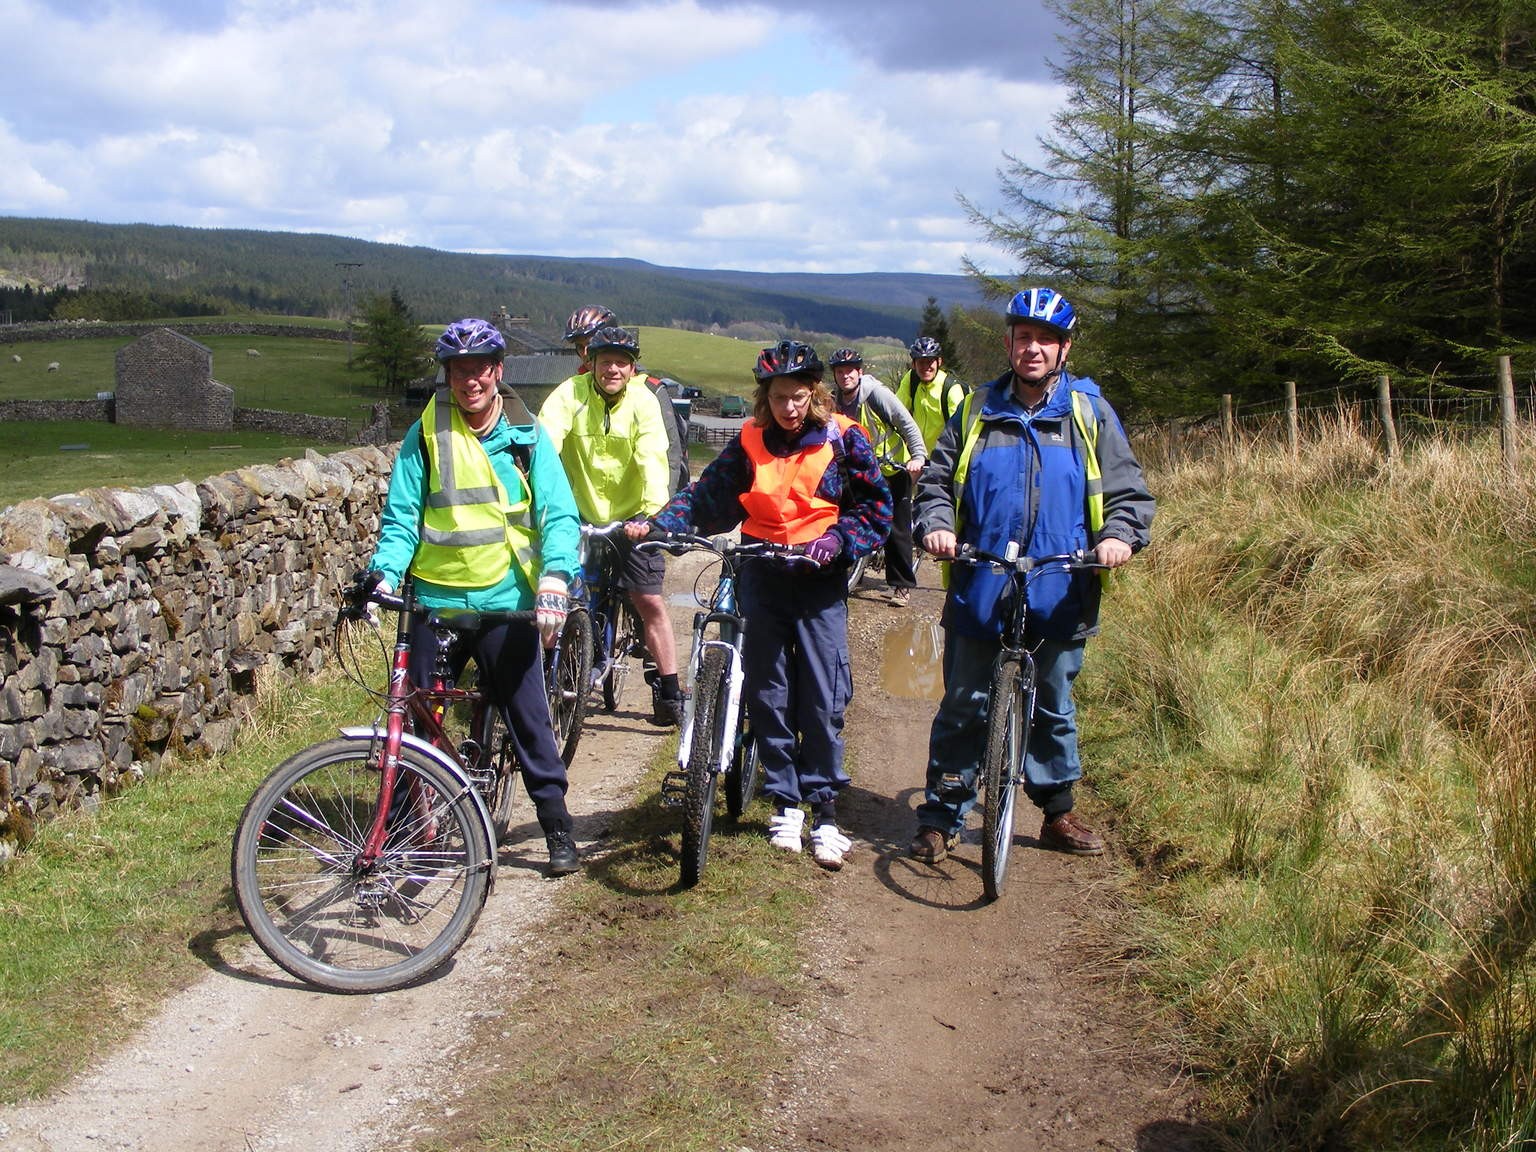 People on bikes on a bridleway next to a dry stone wall, with hills in the background.